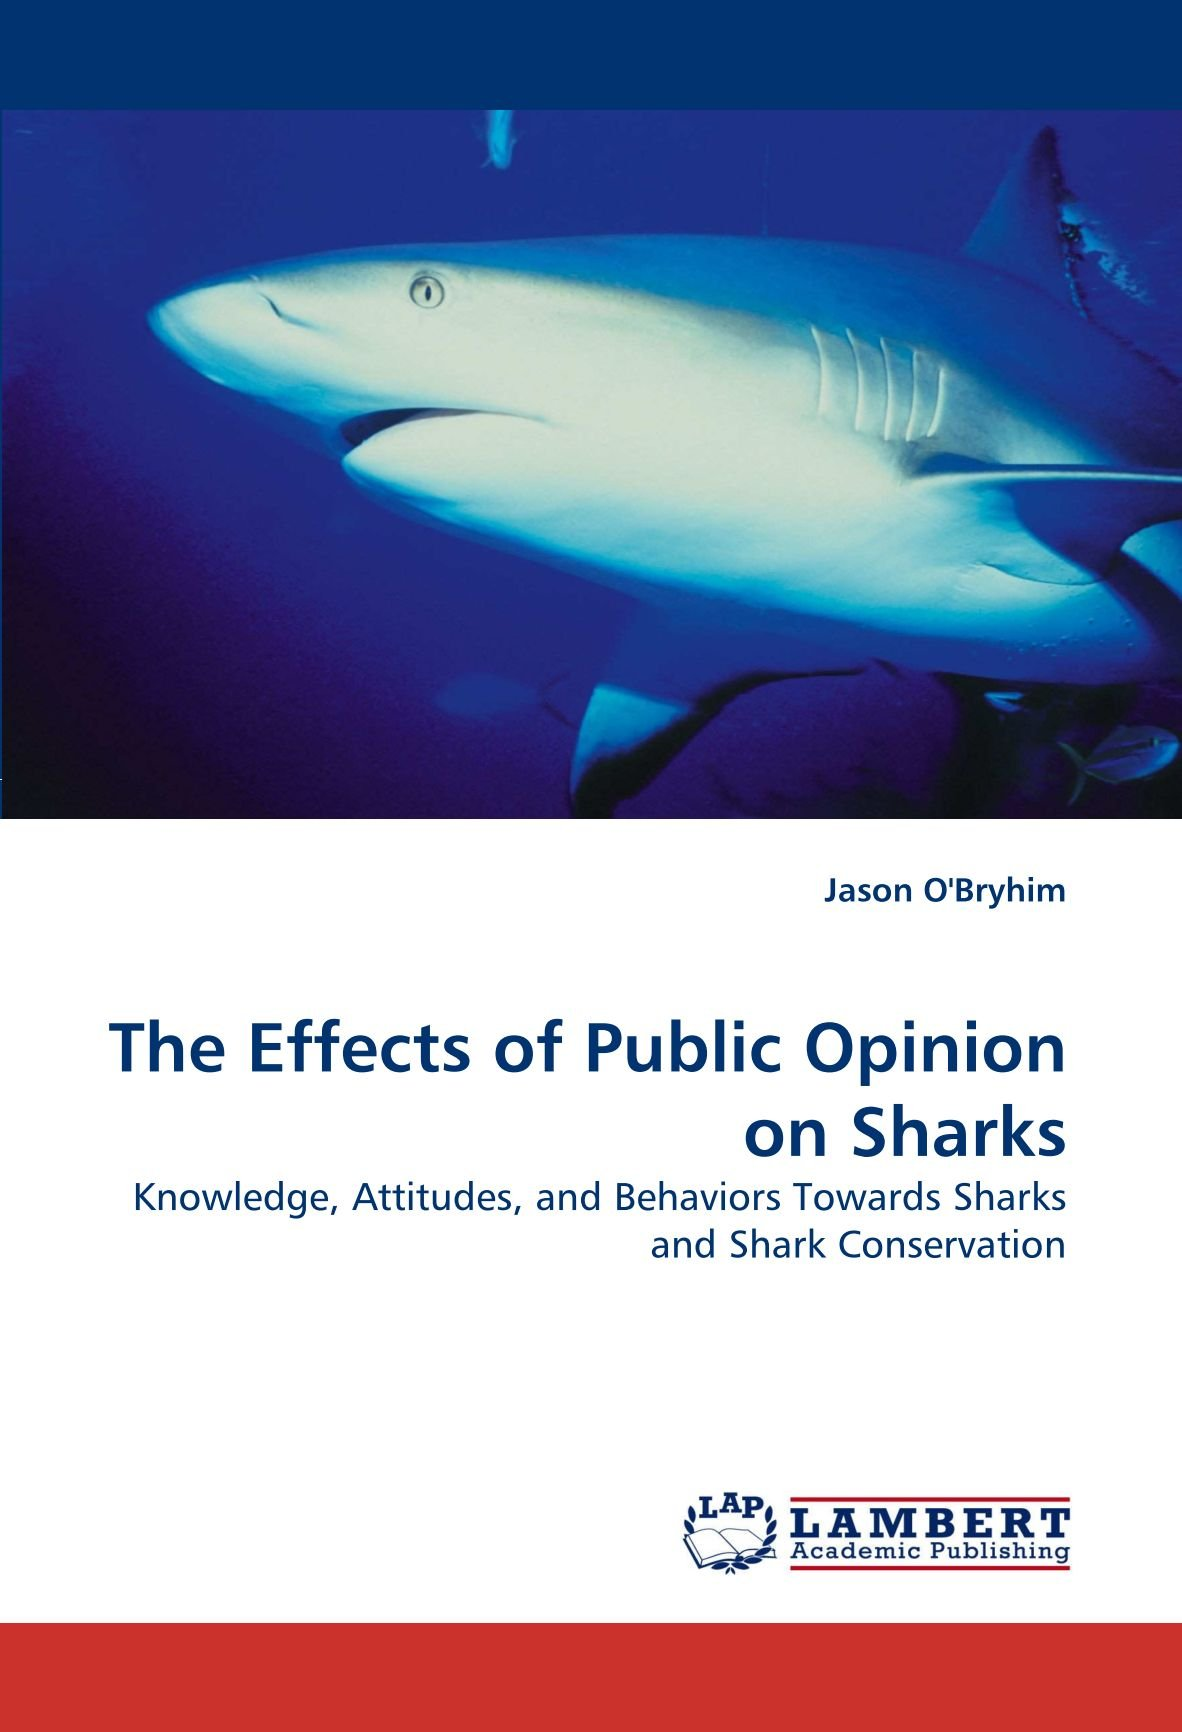 The Effects of Public Opinion on Sharks: Knowledge